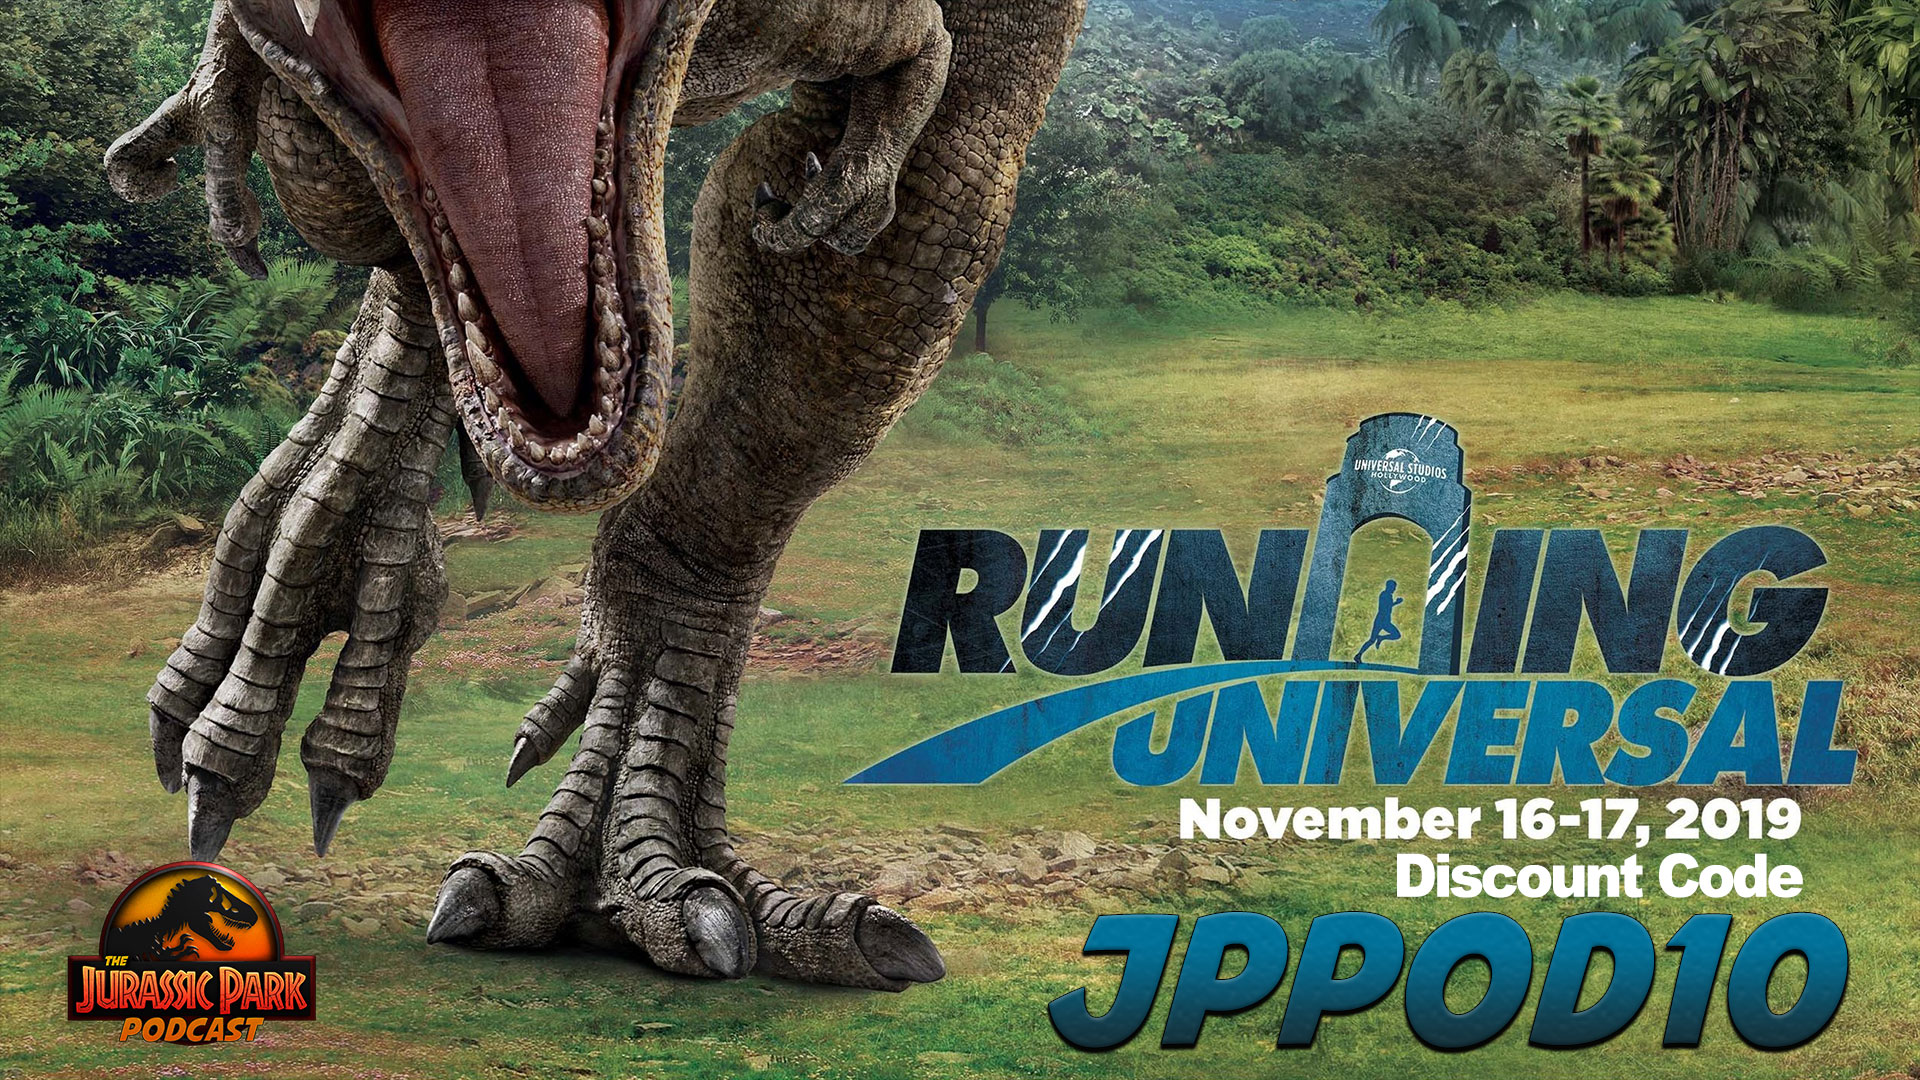 Click through for more details on the Jurassic World Run at Universal Studios Hollywood!